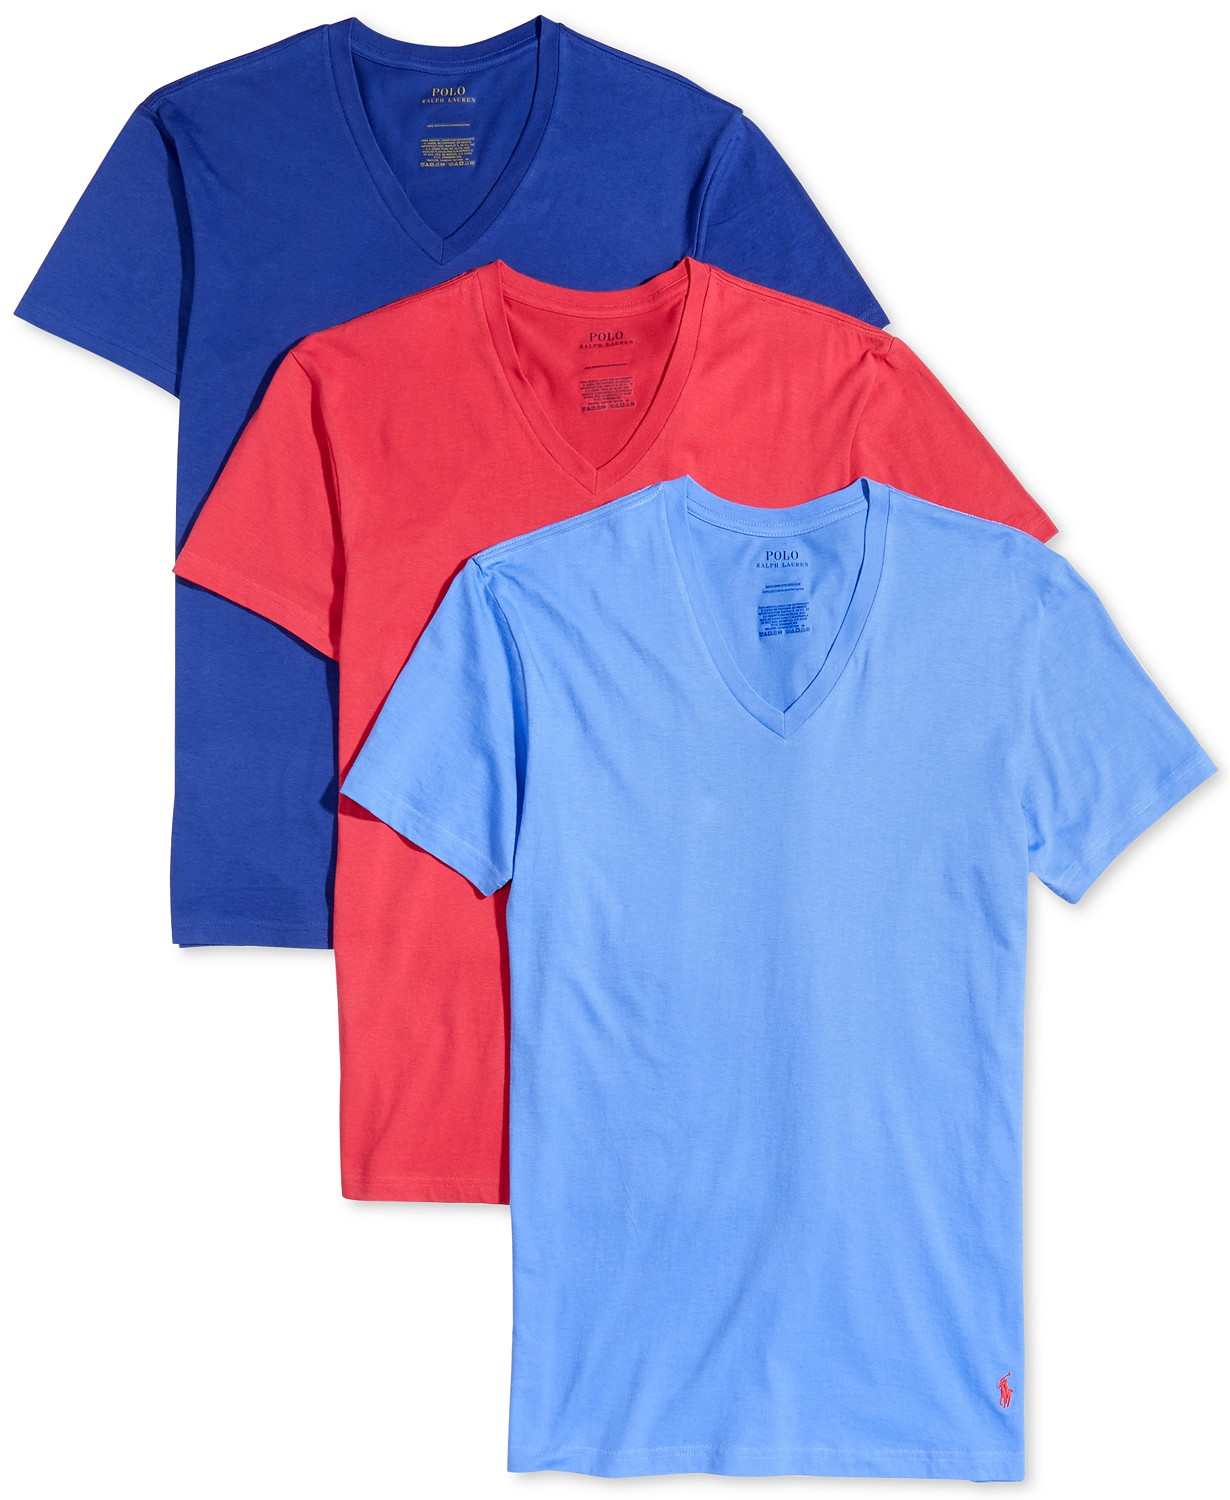 f195dc4a6 Polo Ralph Lauren Men's Classic Fit V-Neck T-Shirts, 3-Pack Only $17.77!